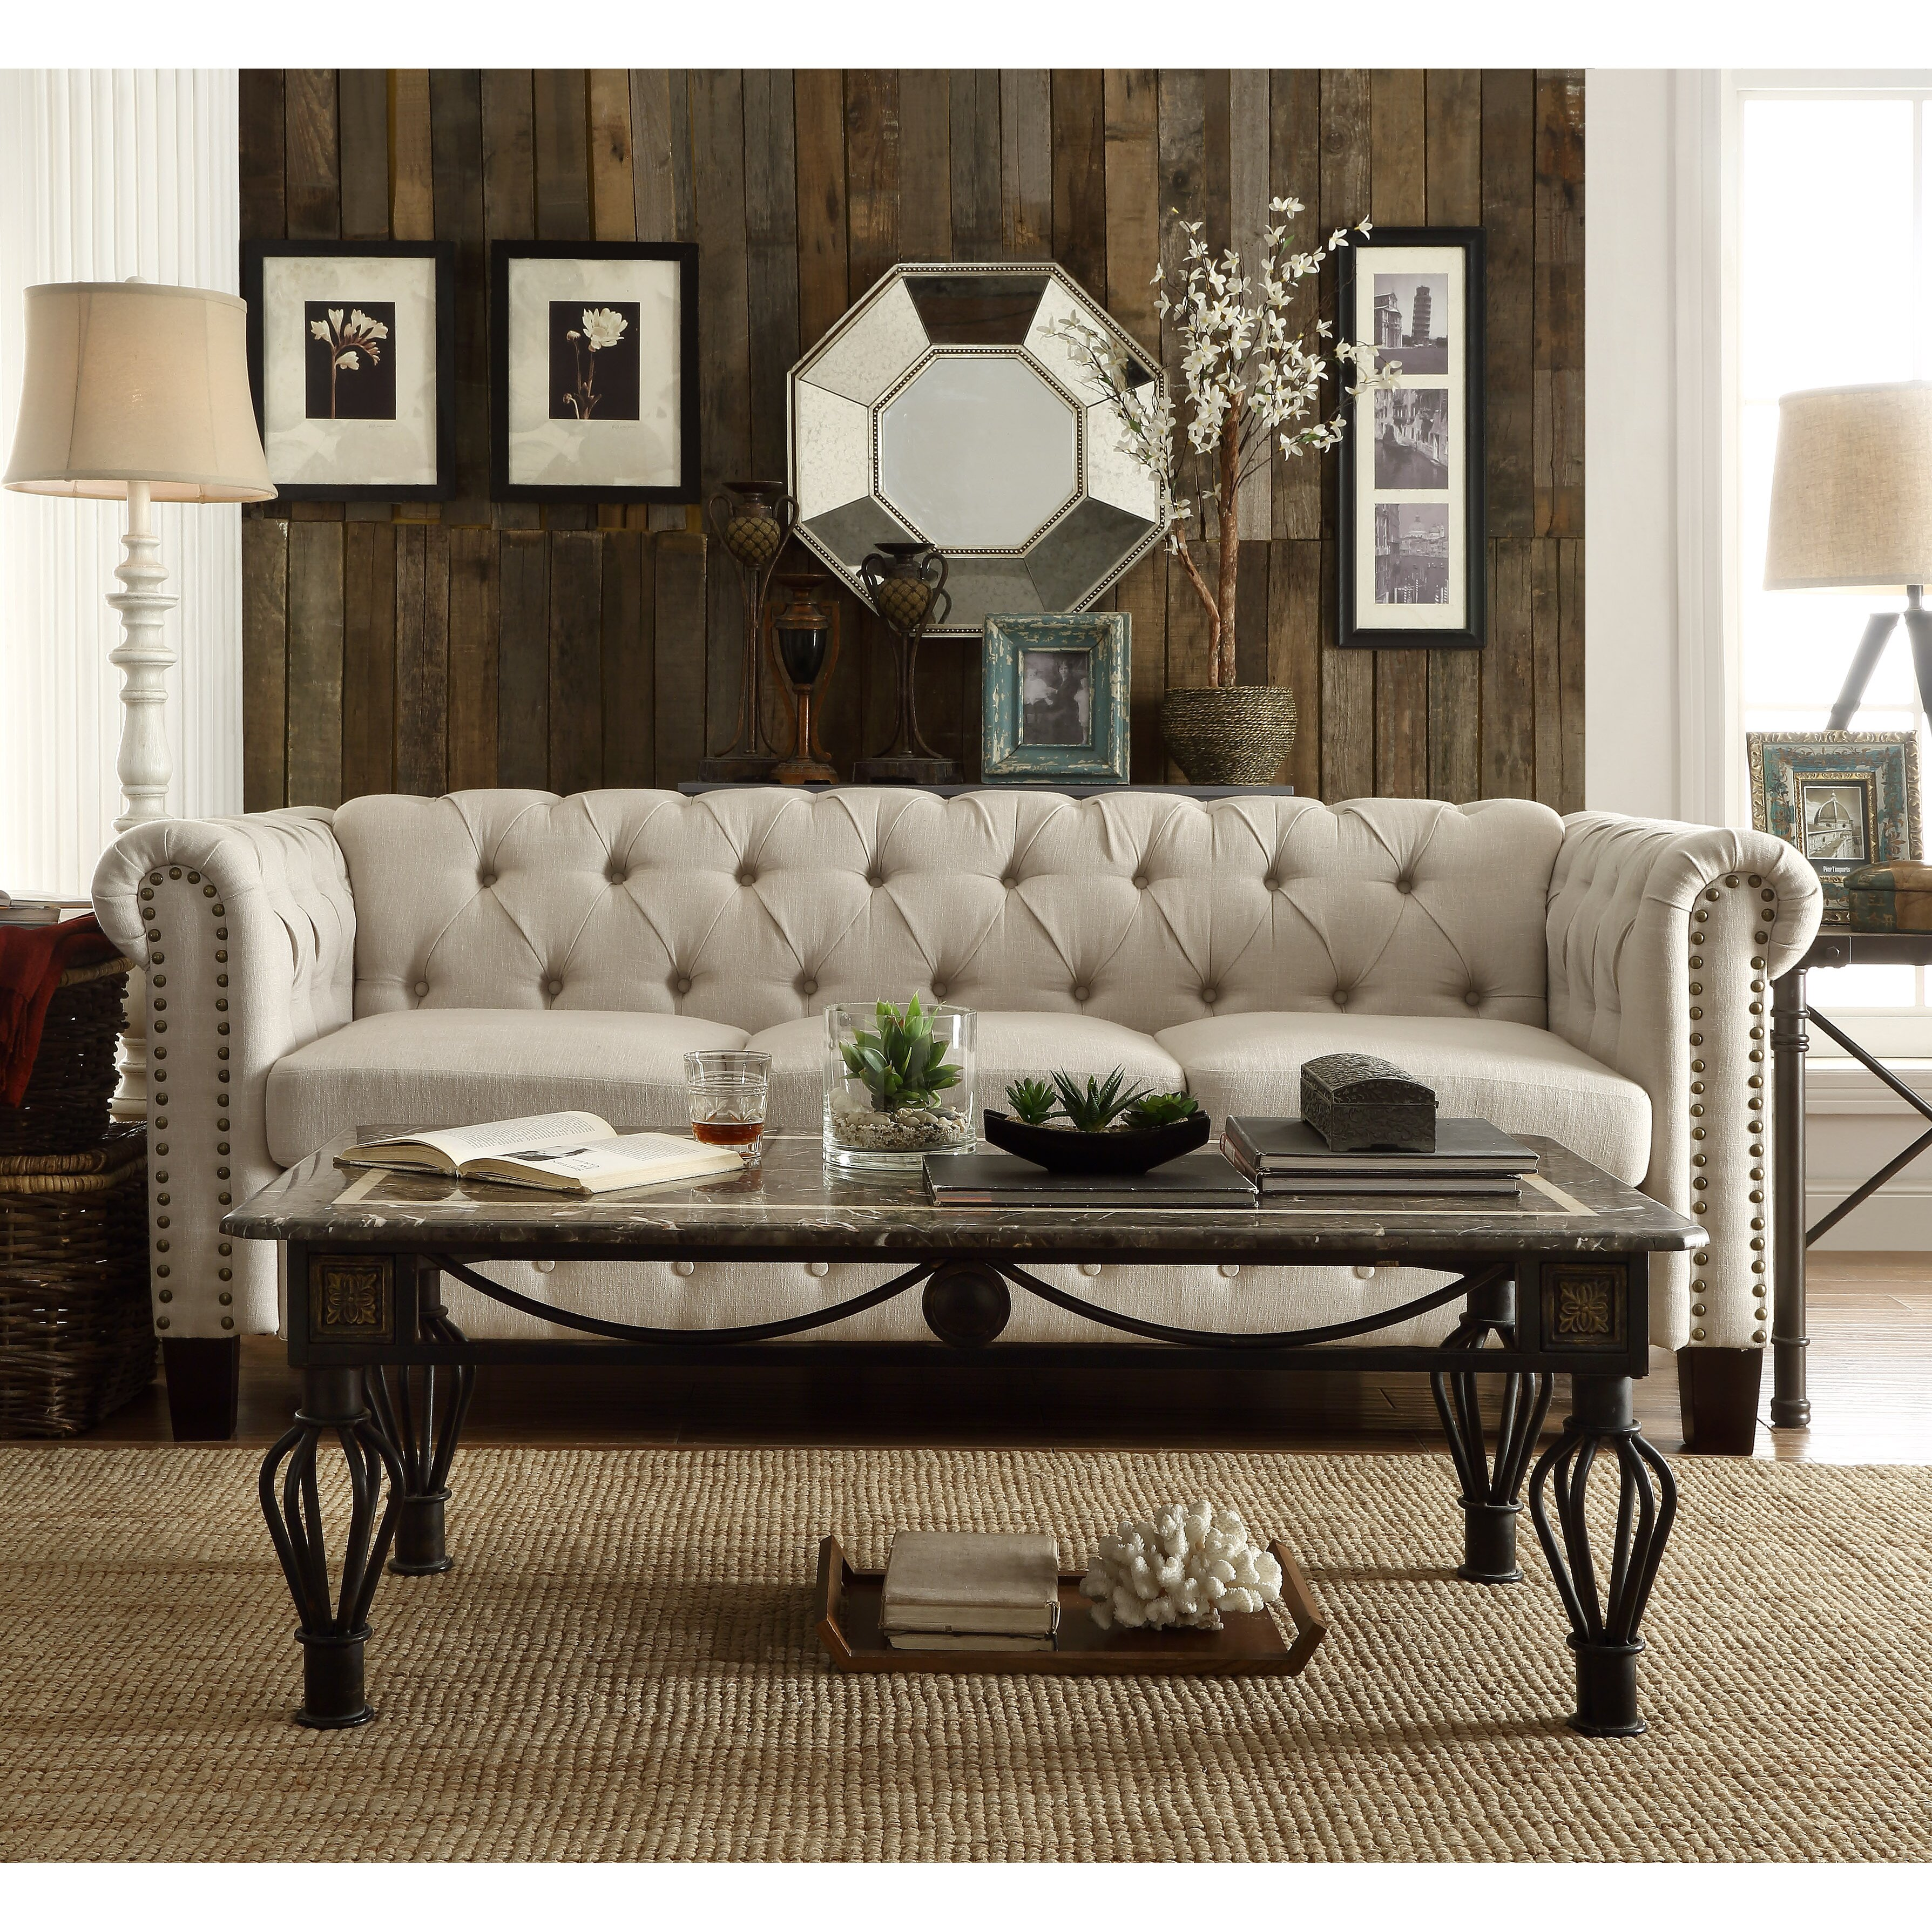 Laurel Foundry Modern Farmhouse Adeline Chesterfield Sofa Reviews Wayfair